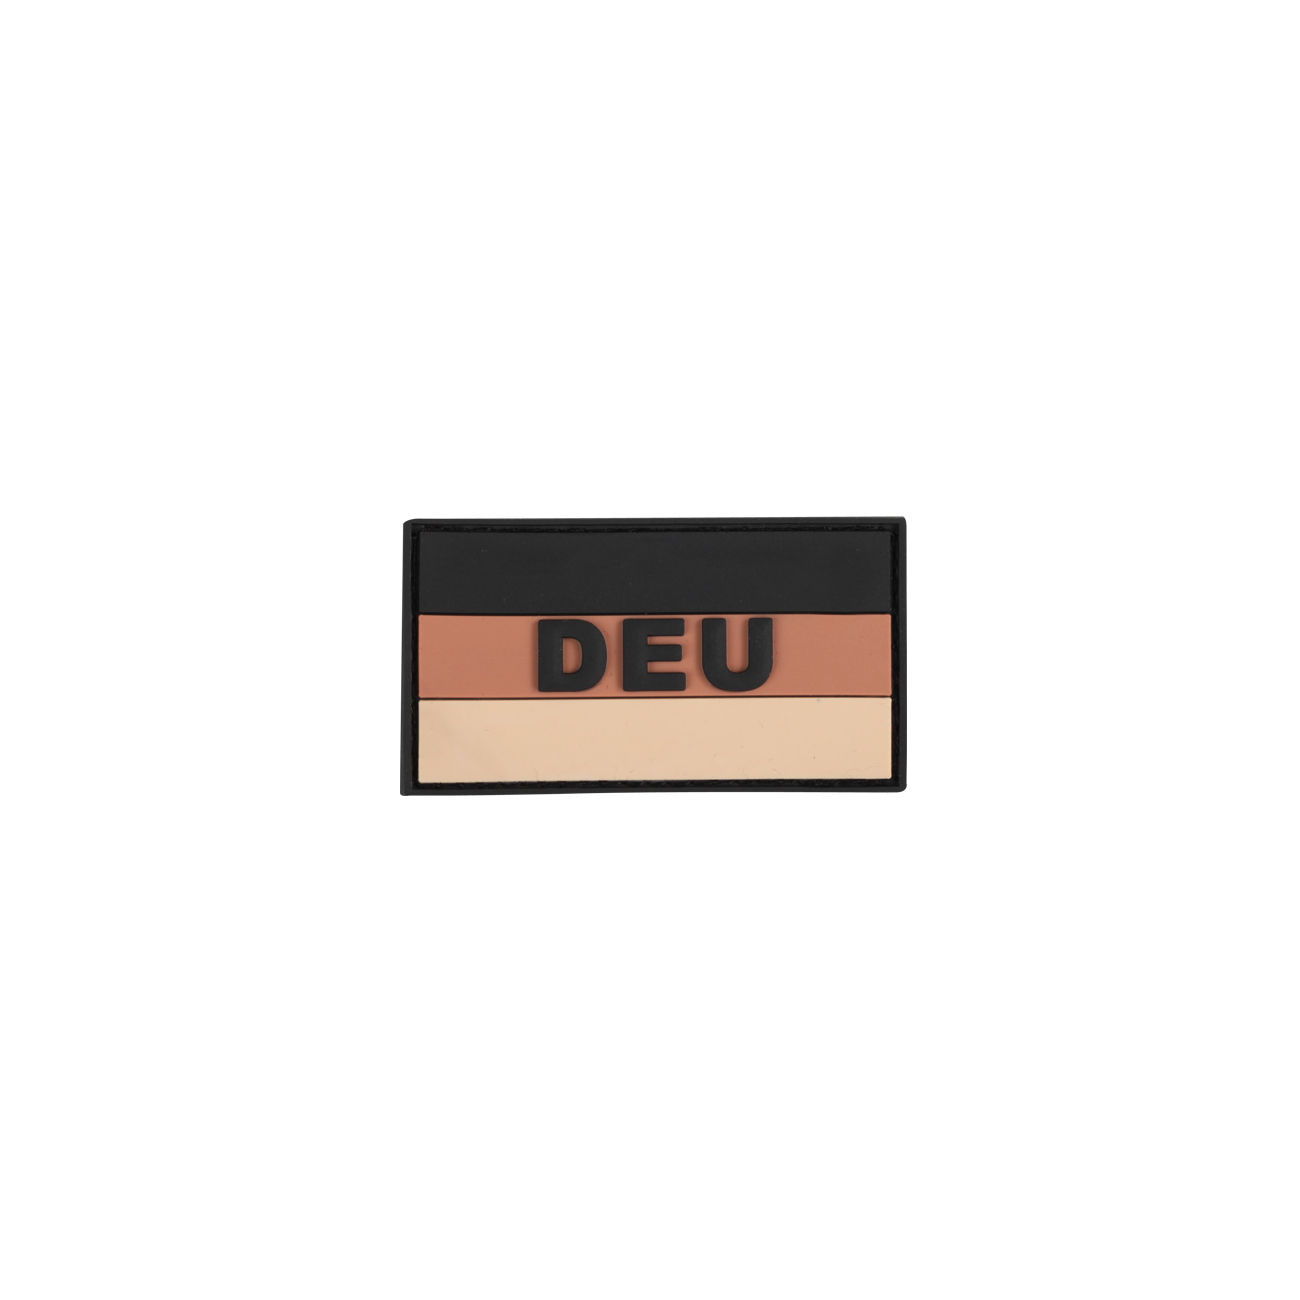 3D Rubber Patch Deutschlandflagge DEU khaki 0